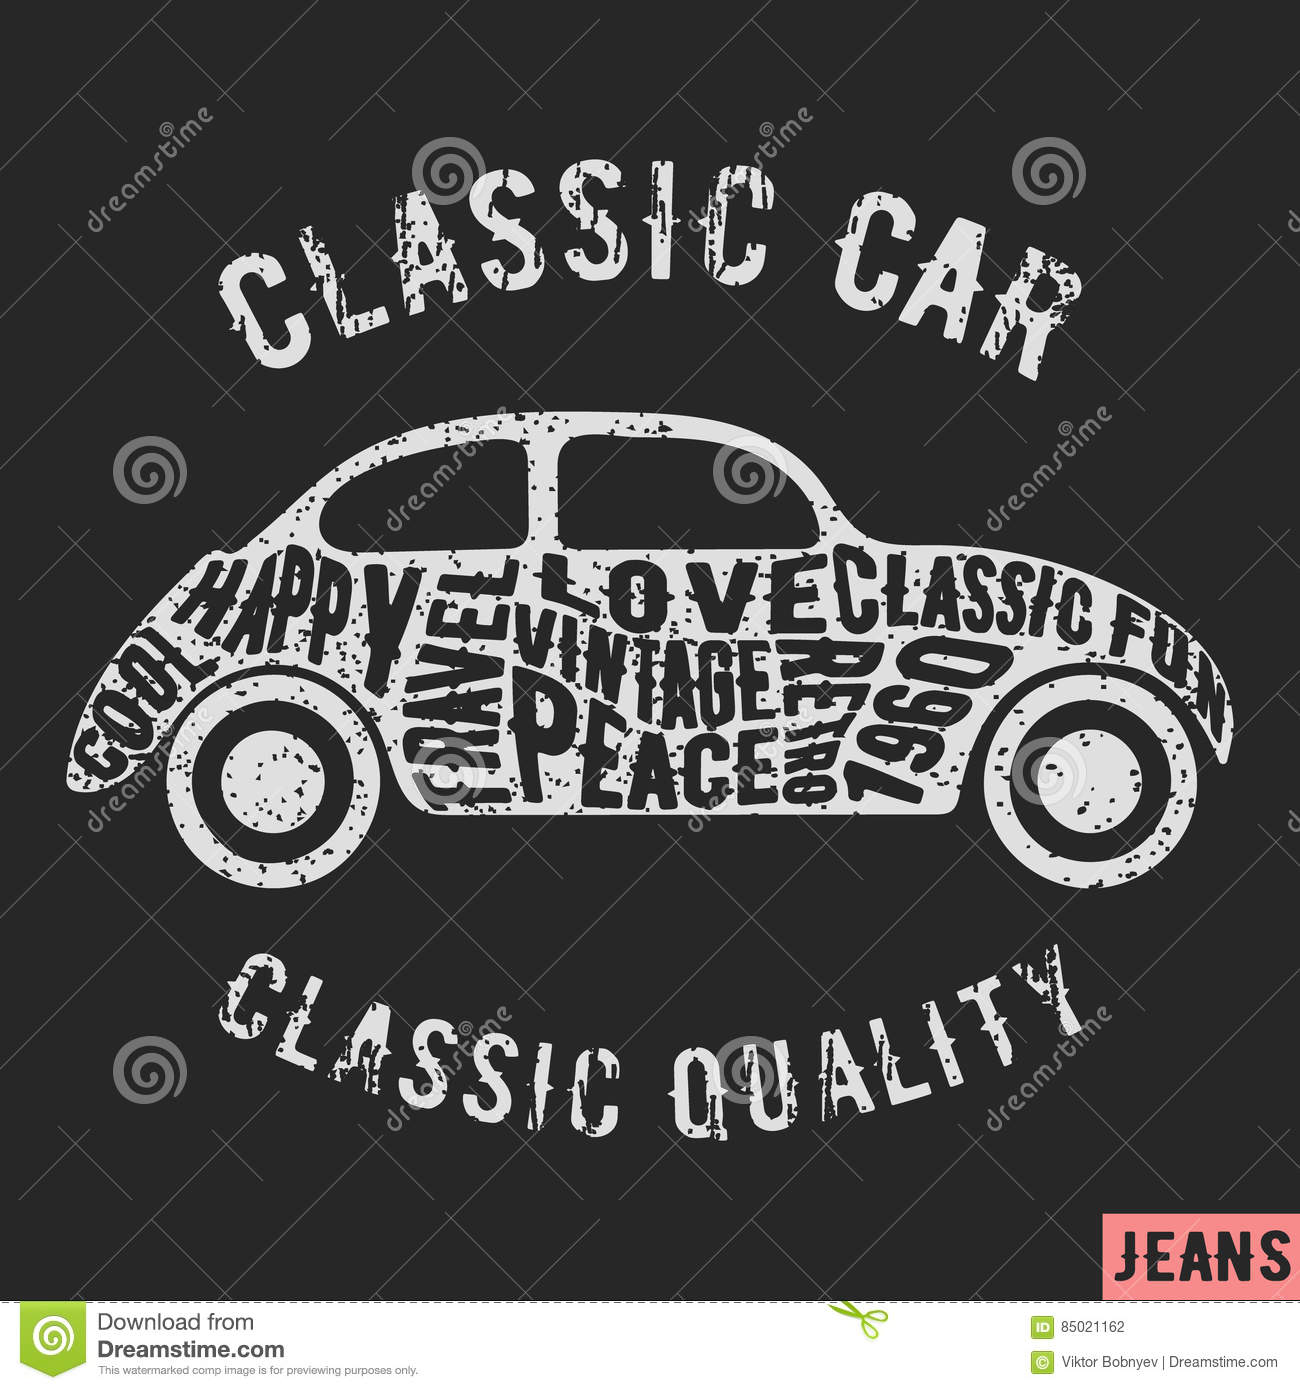 b82fe587 T-shirt print design. Classic car vintage stamp. Printing and badge  applique label t-shirts, jeans, casual wear. Vector illustration.